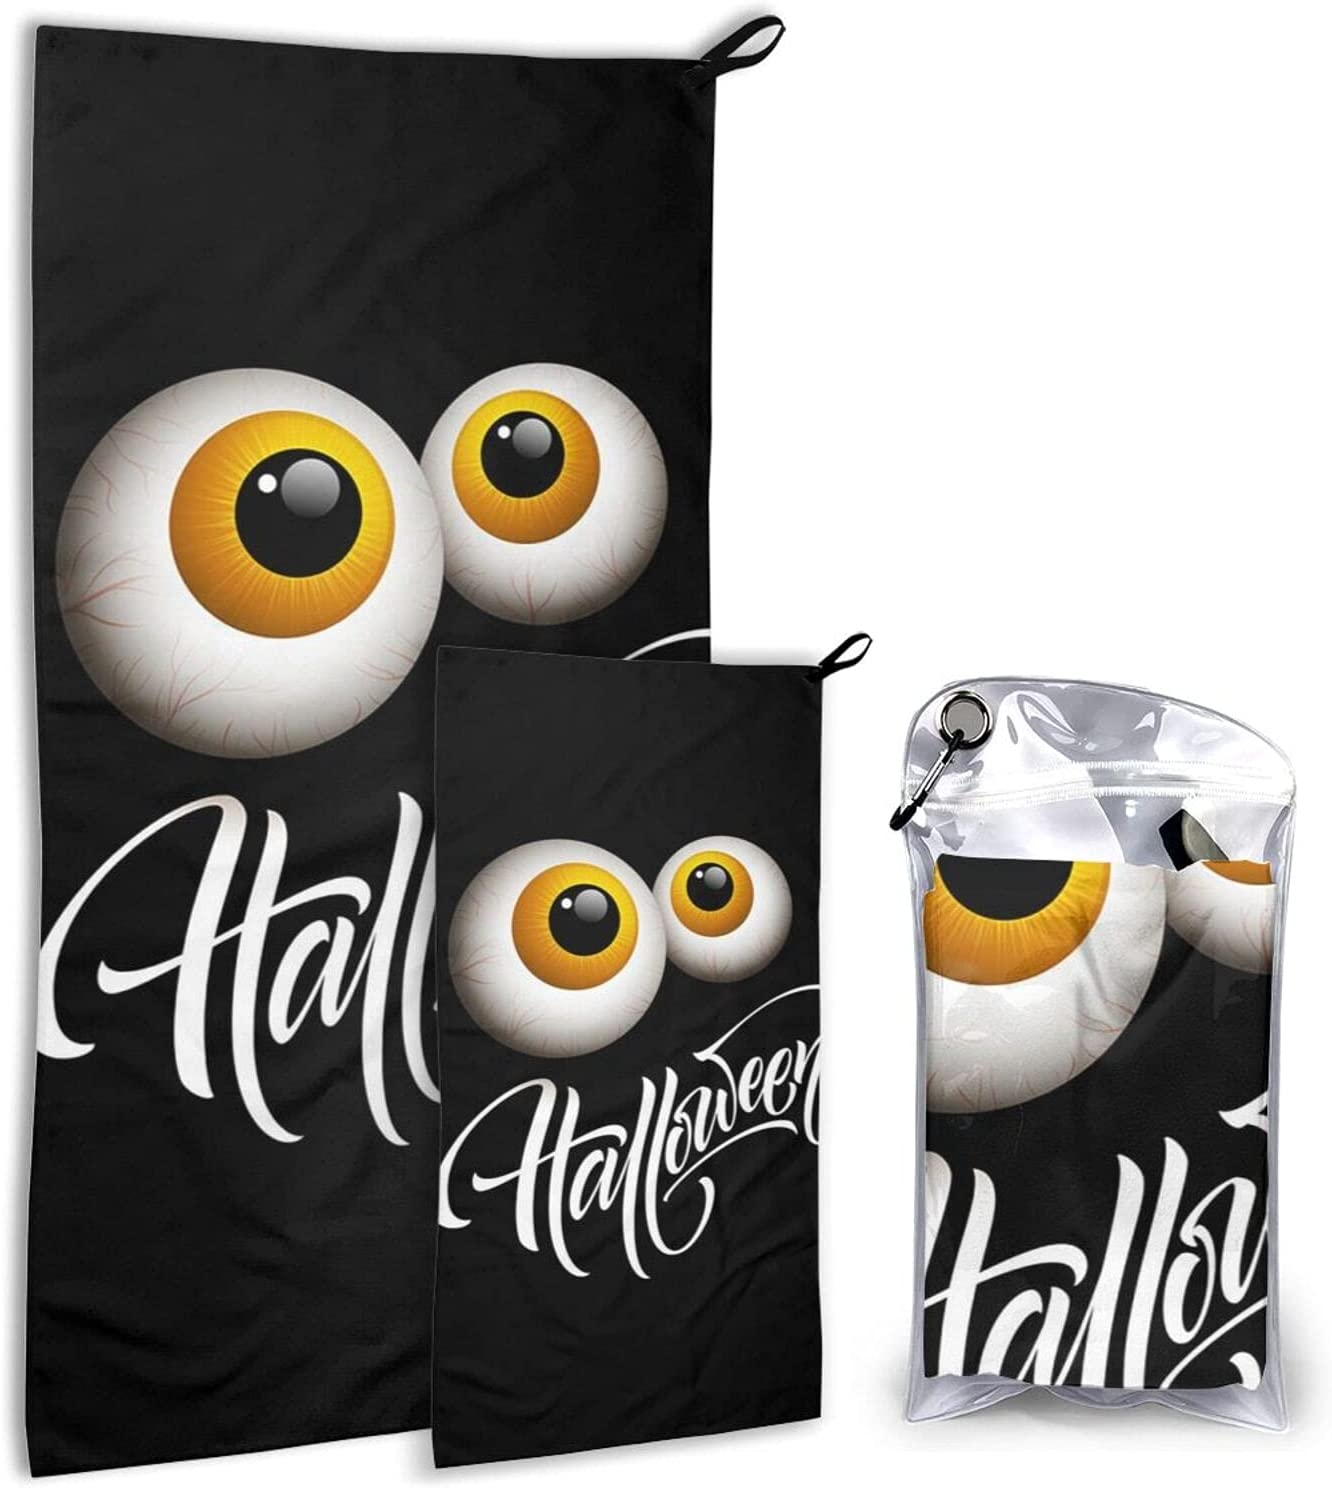 Happy Halloween Microfiber Towels 2 Pack Quick Camping Surprise price - Max 61% OFF Dry T